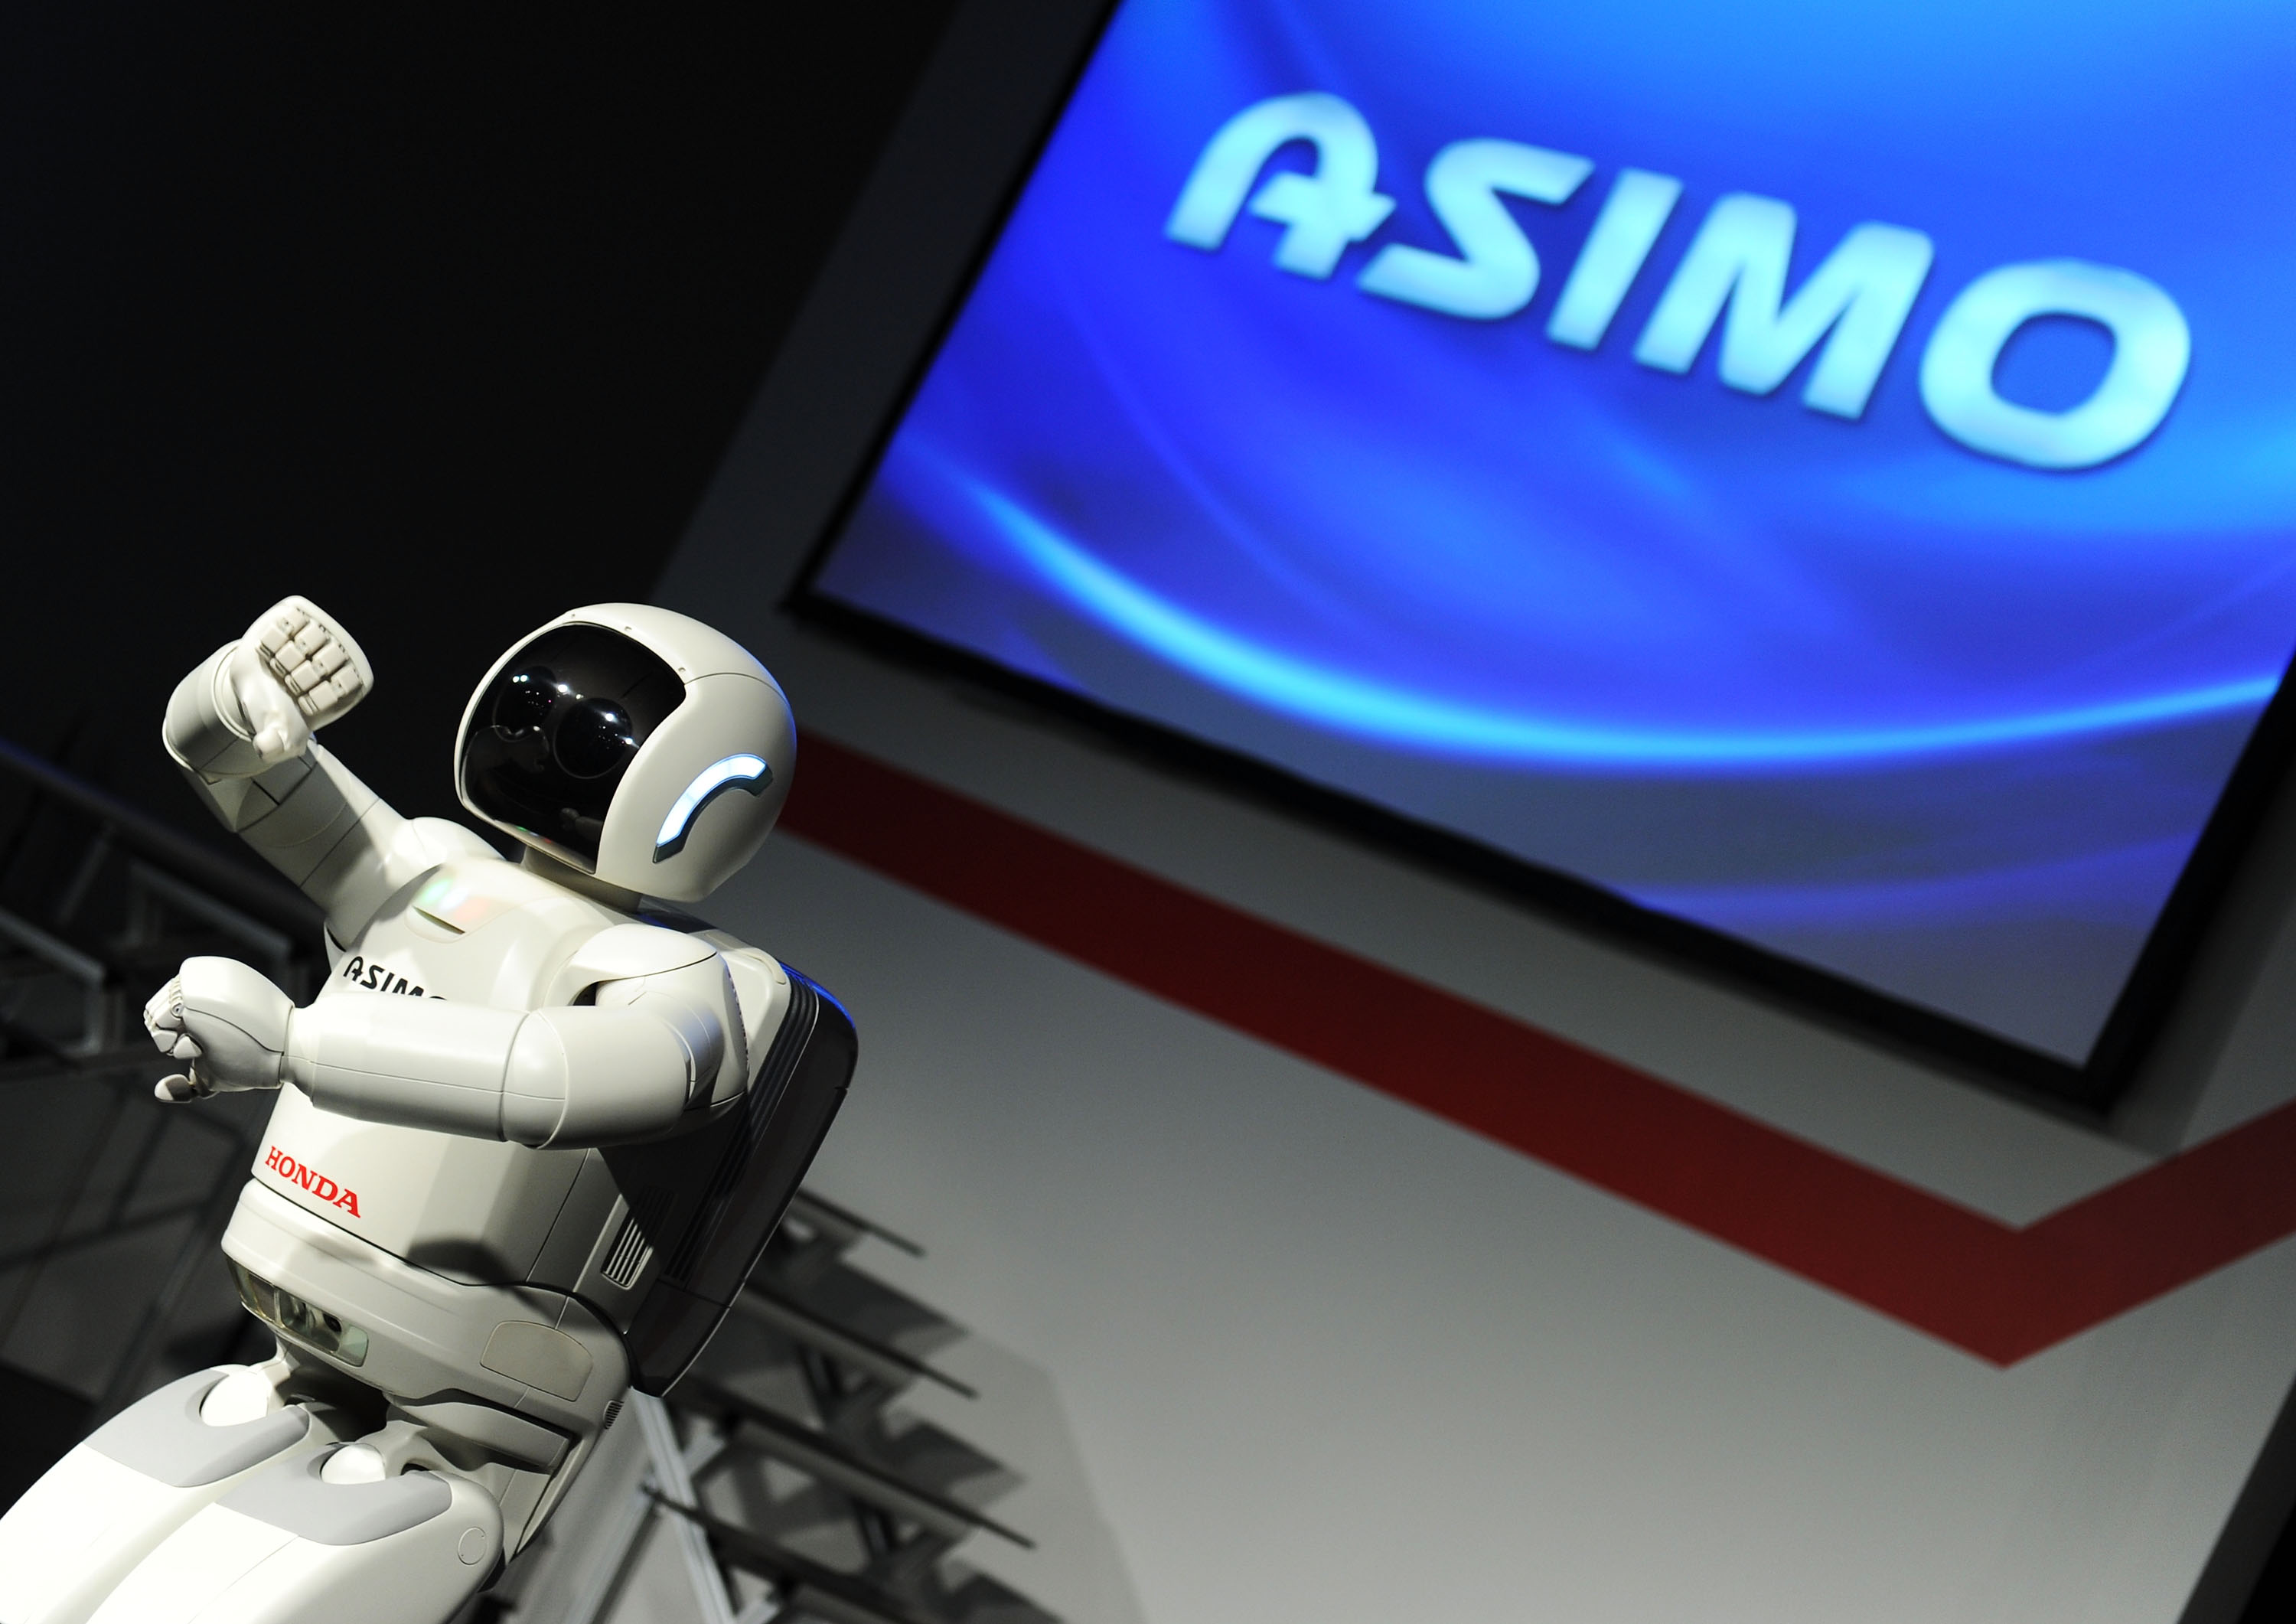 Honda reportedly retires the iconic Asimo